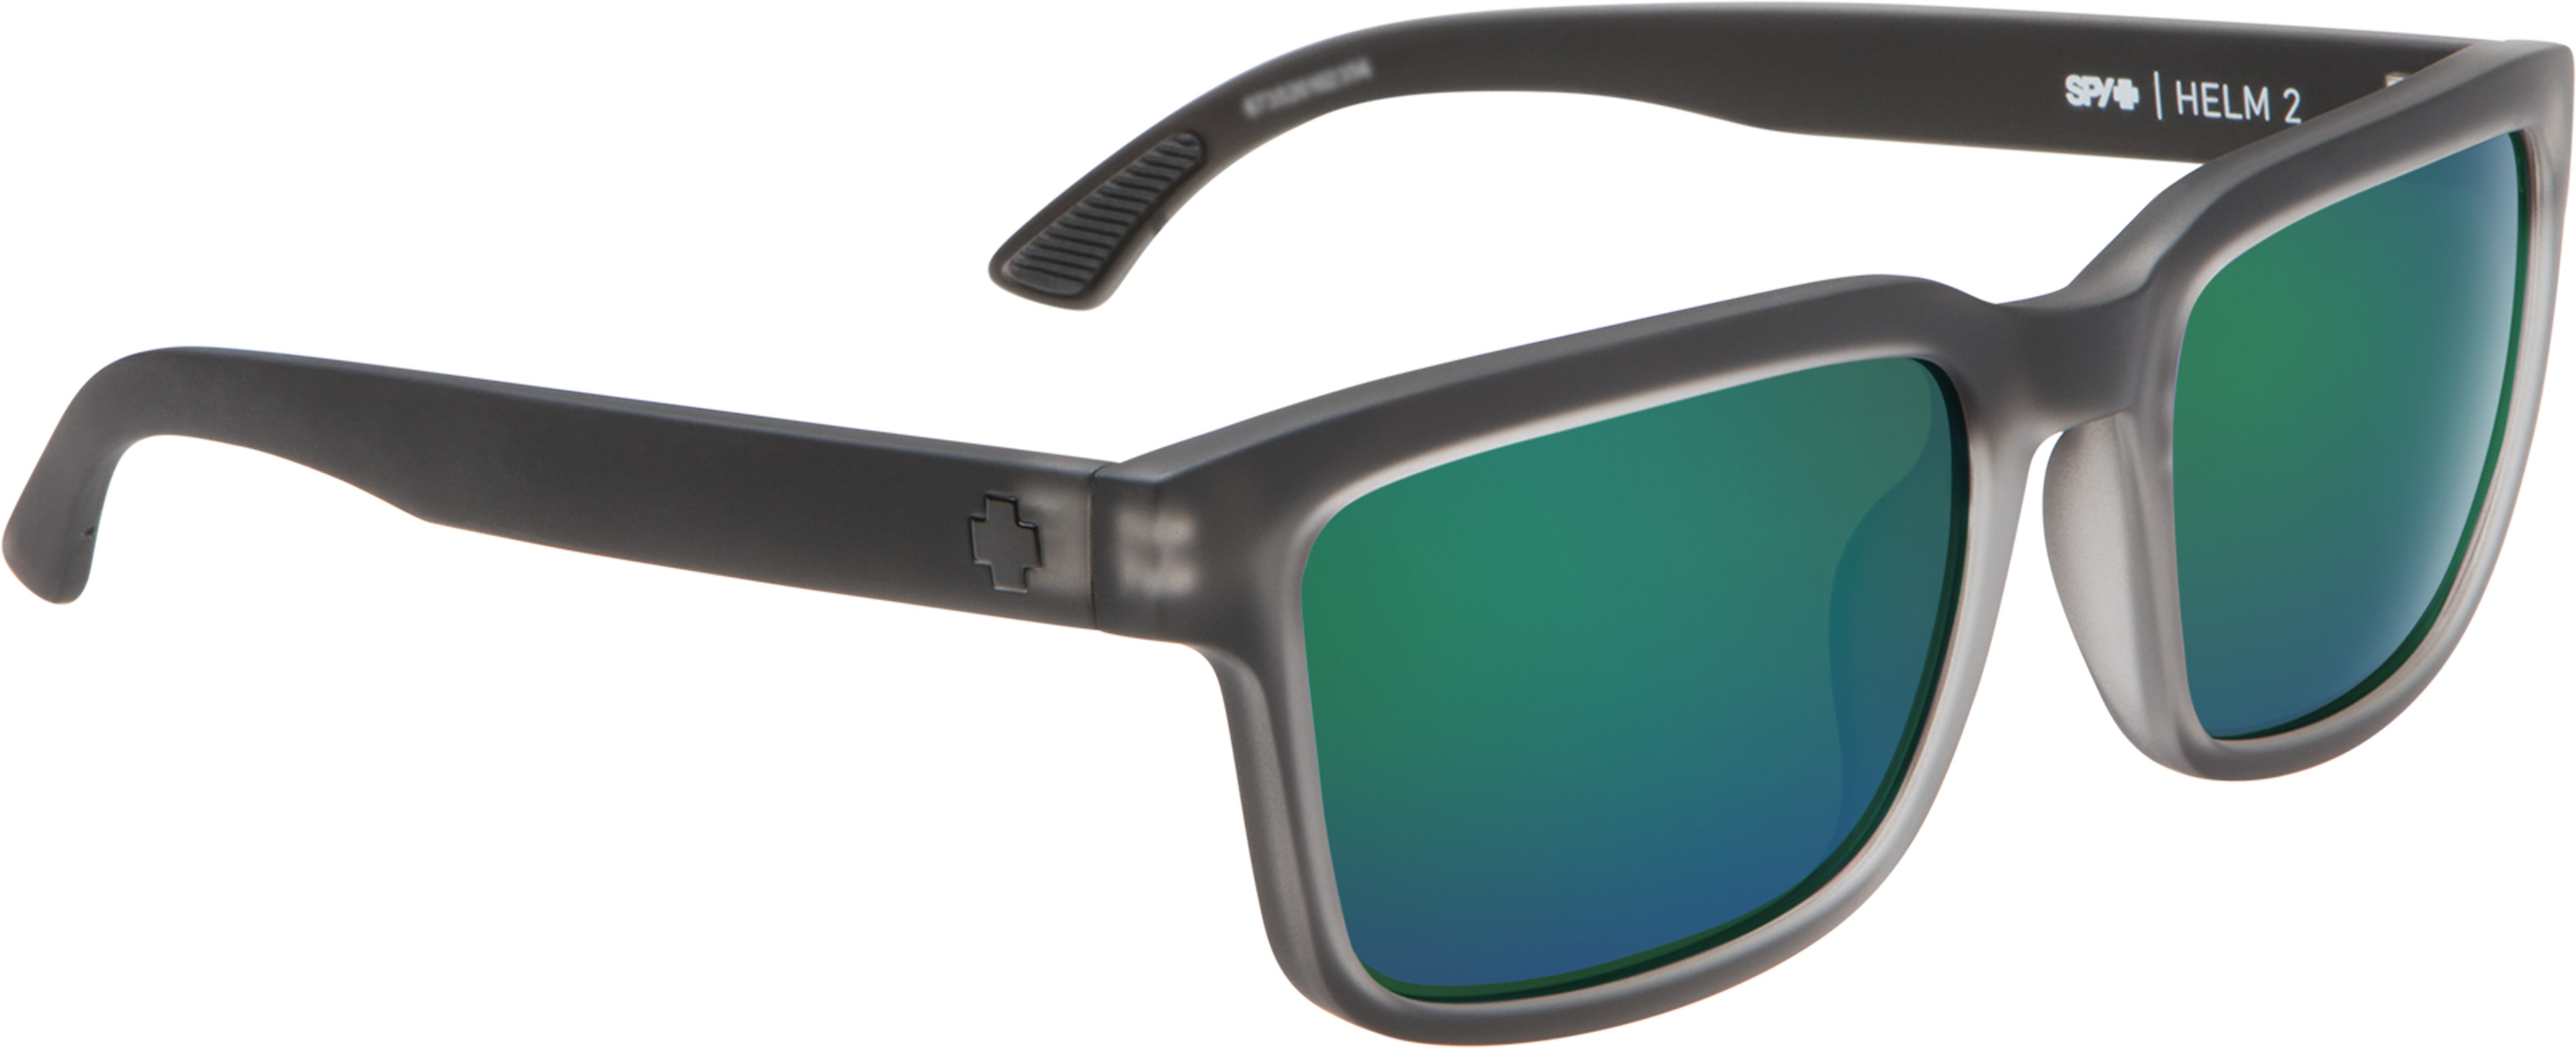 afc39a9a776e Spy-Helm-2-Sunglasses-Mens thumbnail 8